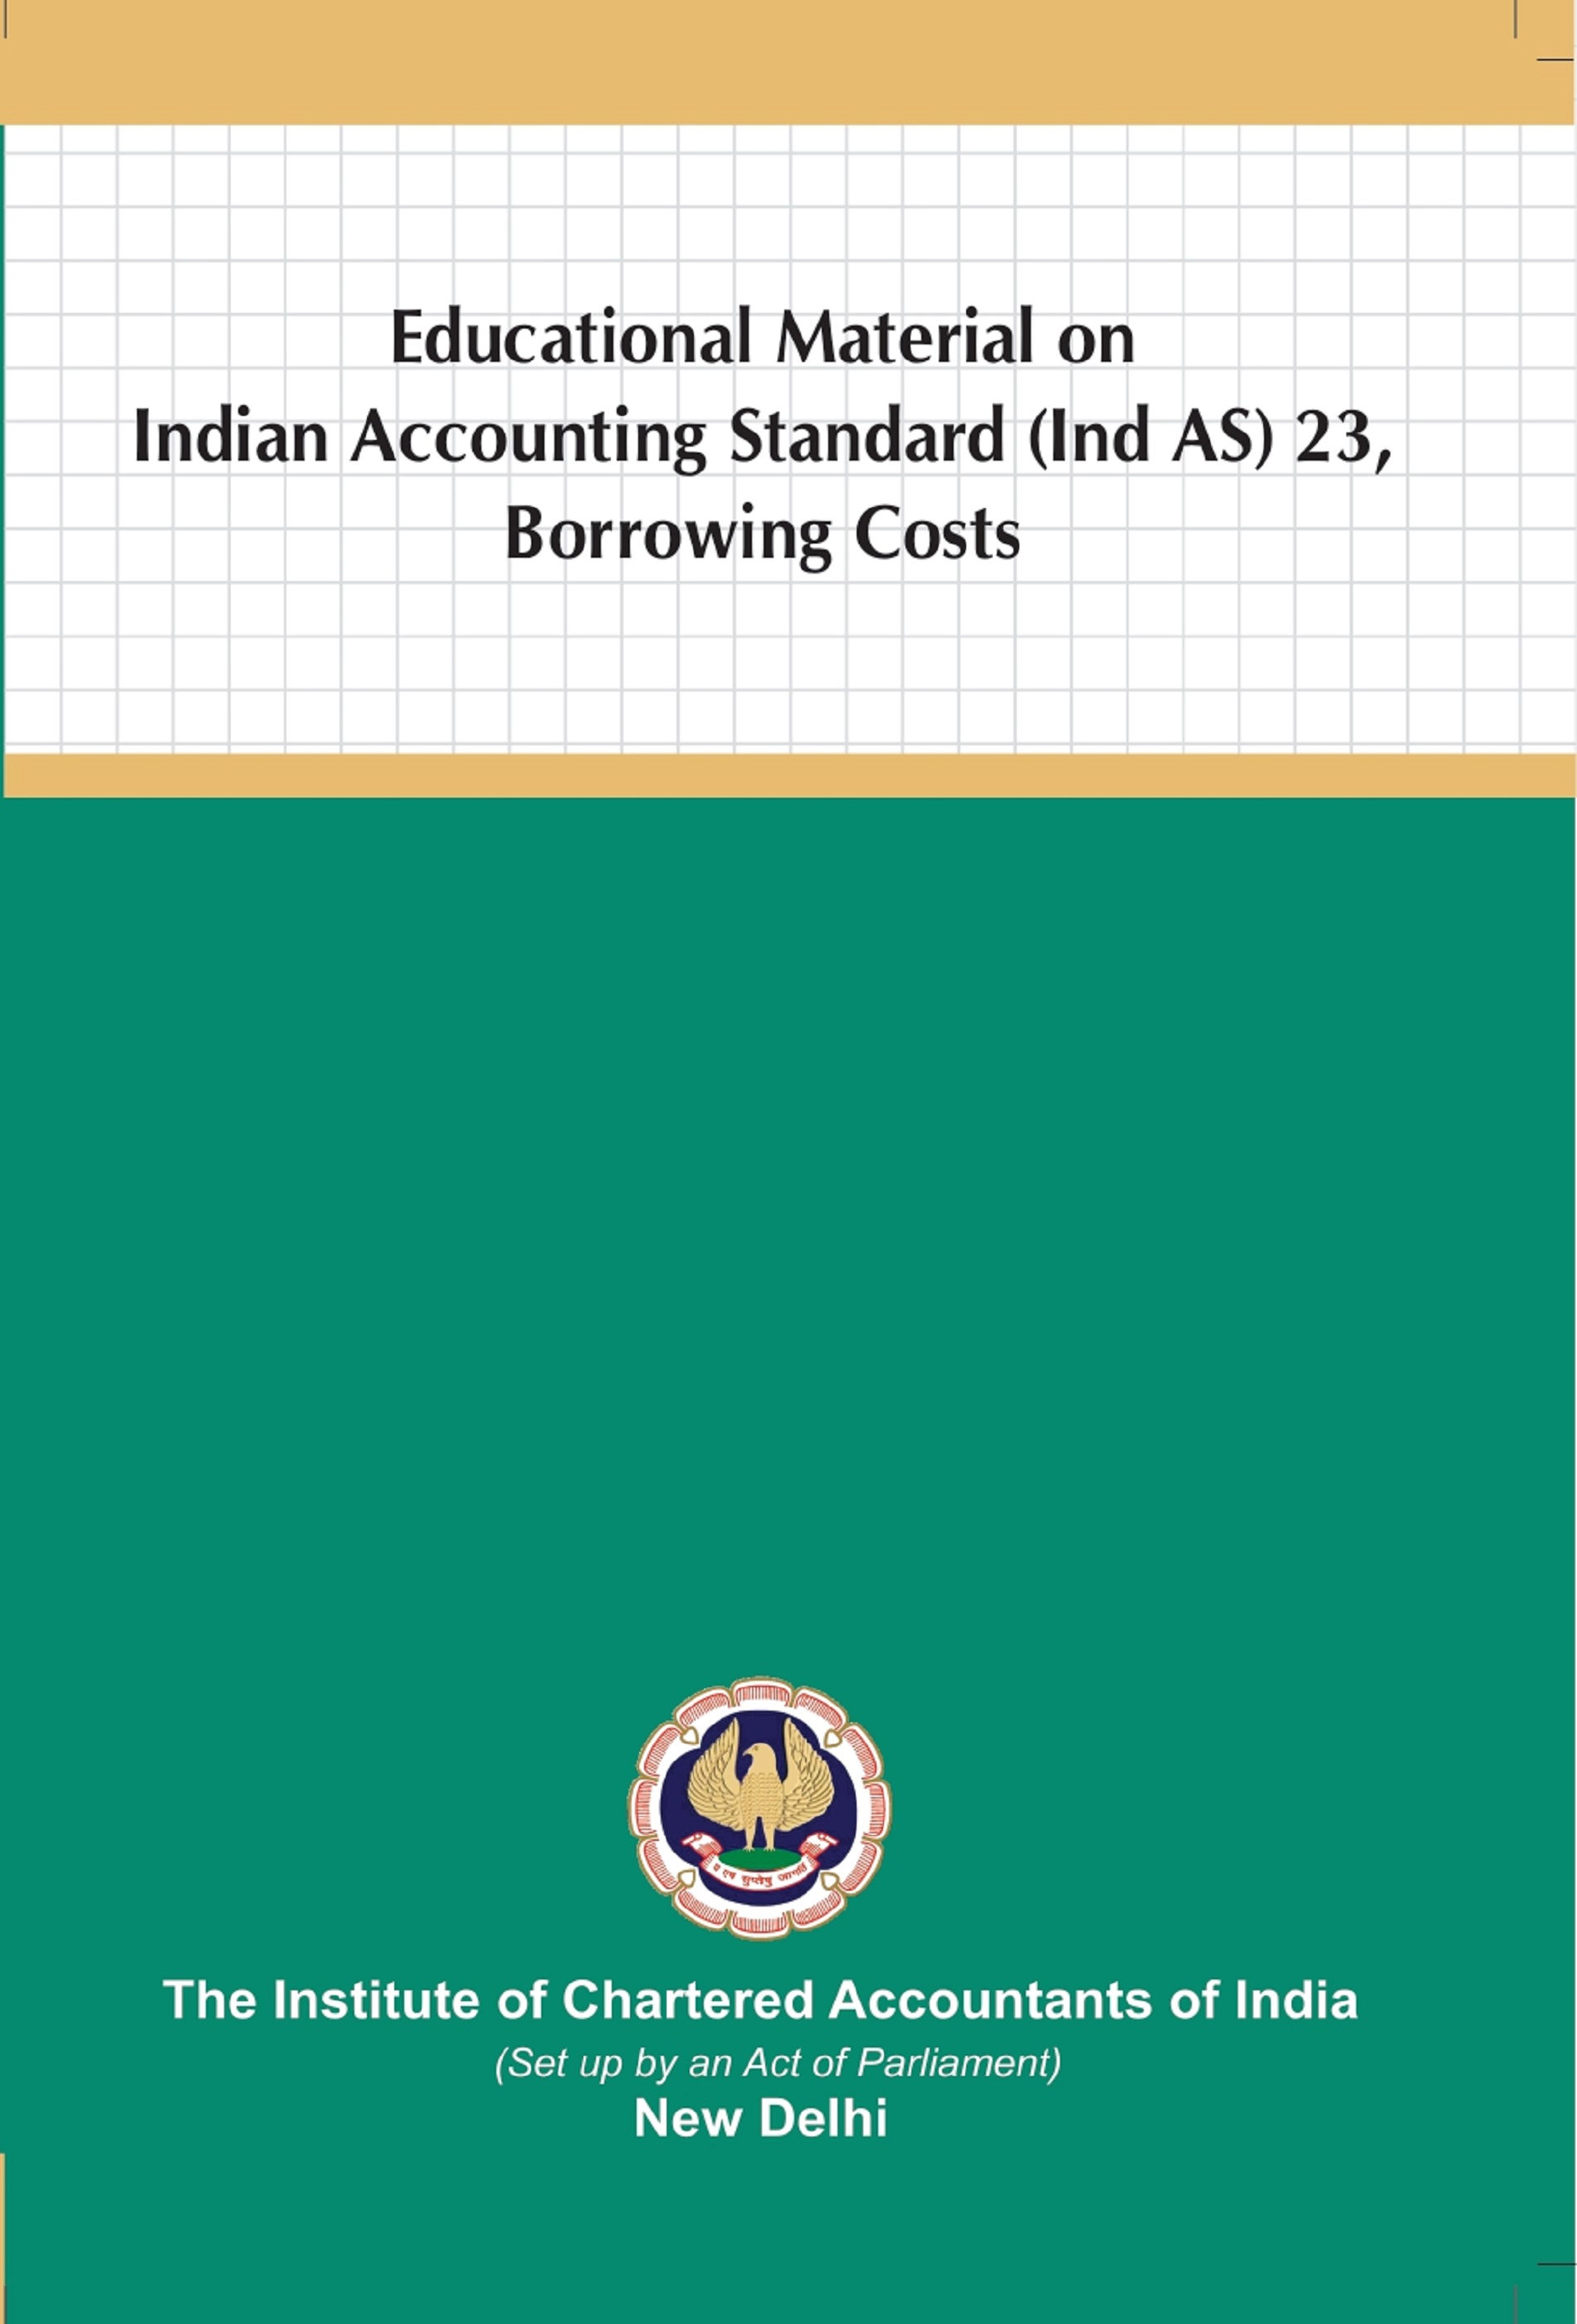 Educational Material on Indian Accounting Standard (Ind AS) 23, Borrowing Costs (January, 2021)